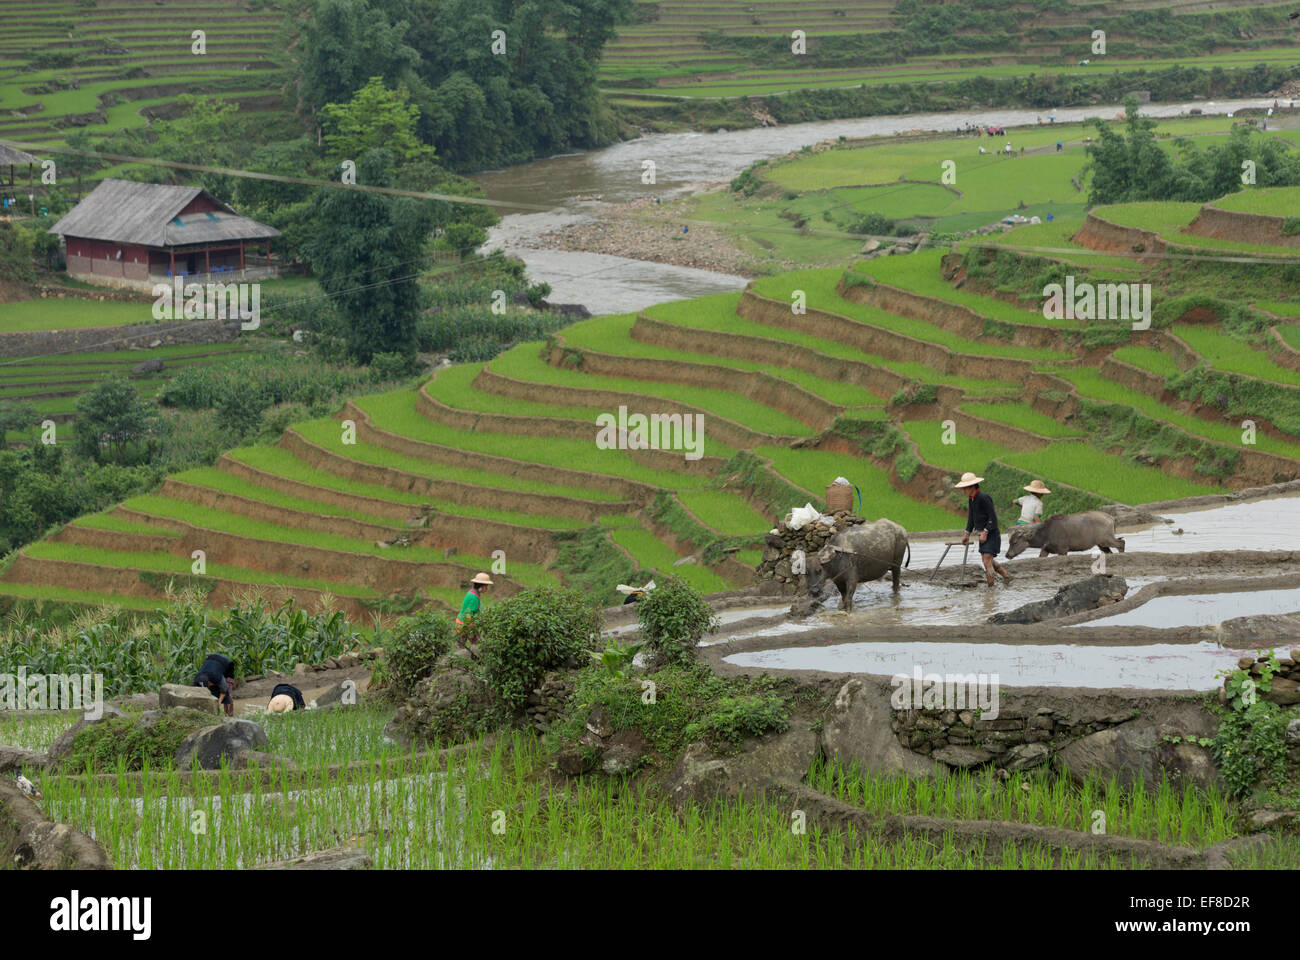 Farmers planting rice in terraces with water buffalo plow. Near Hau Thao village, Sa Pa Lao, Lao Cai Vietnam - Stock Image